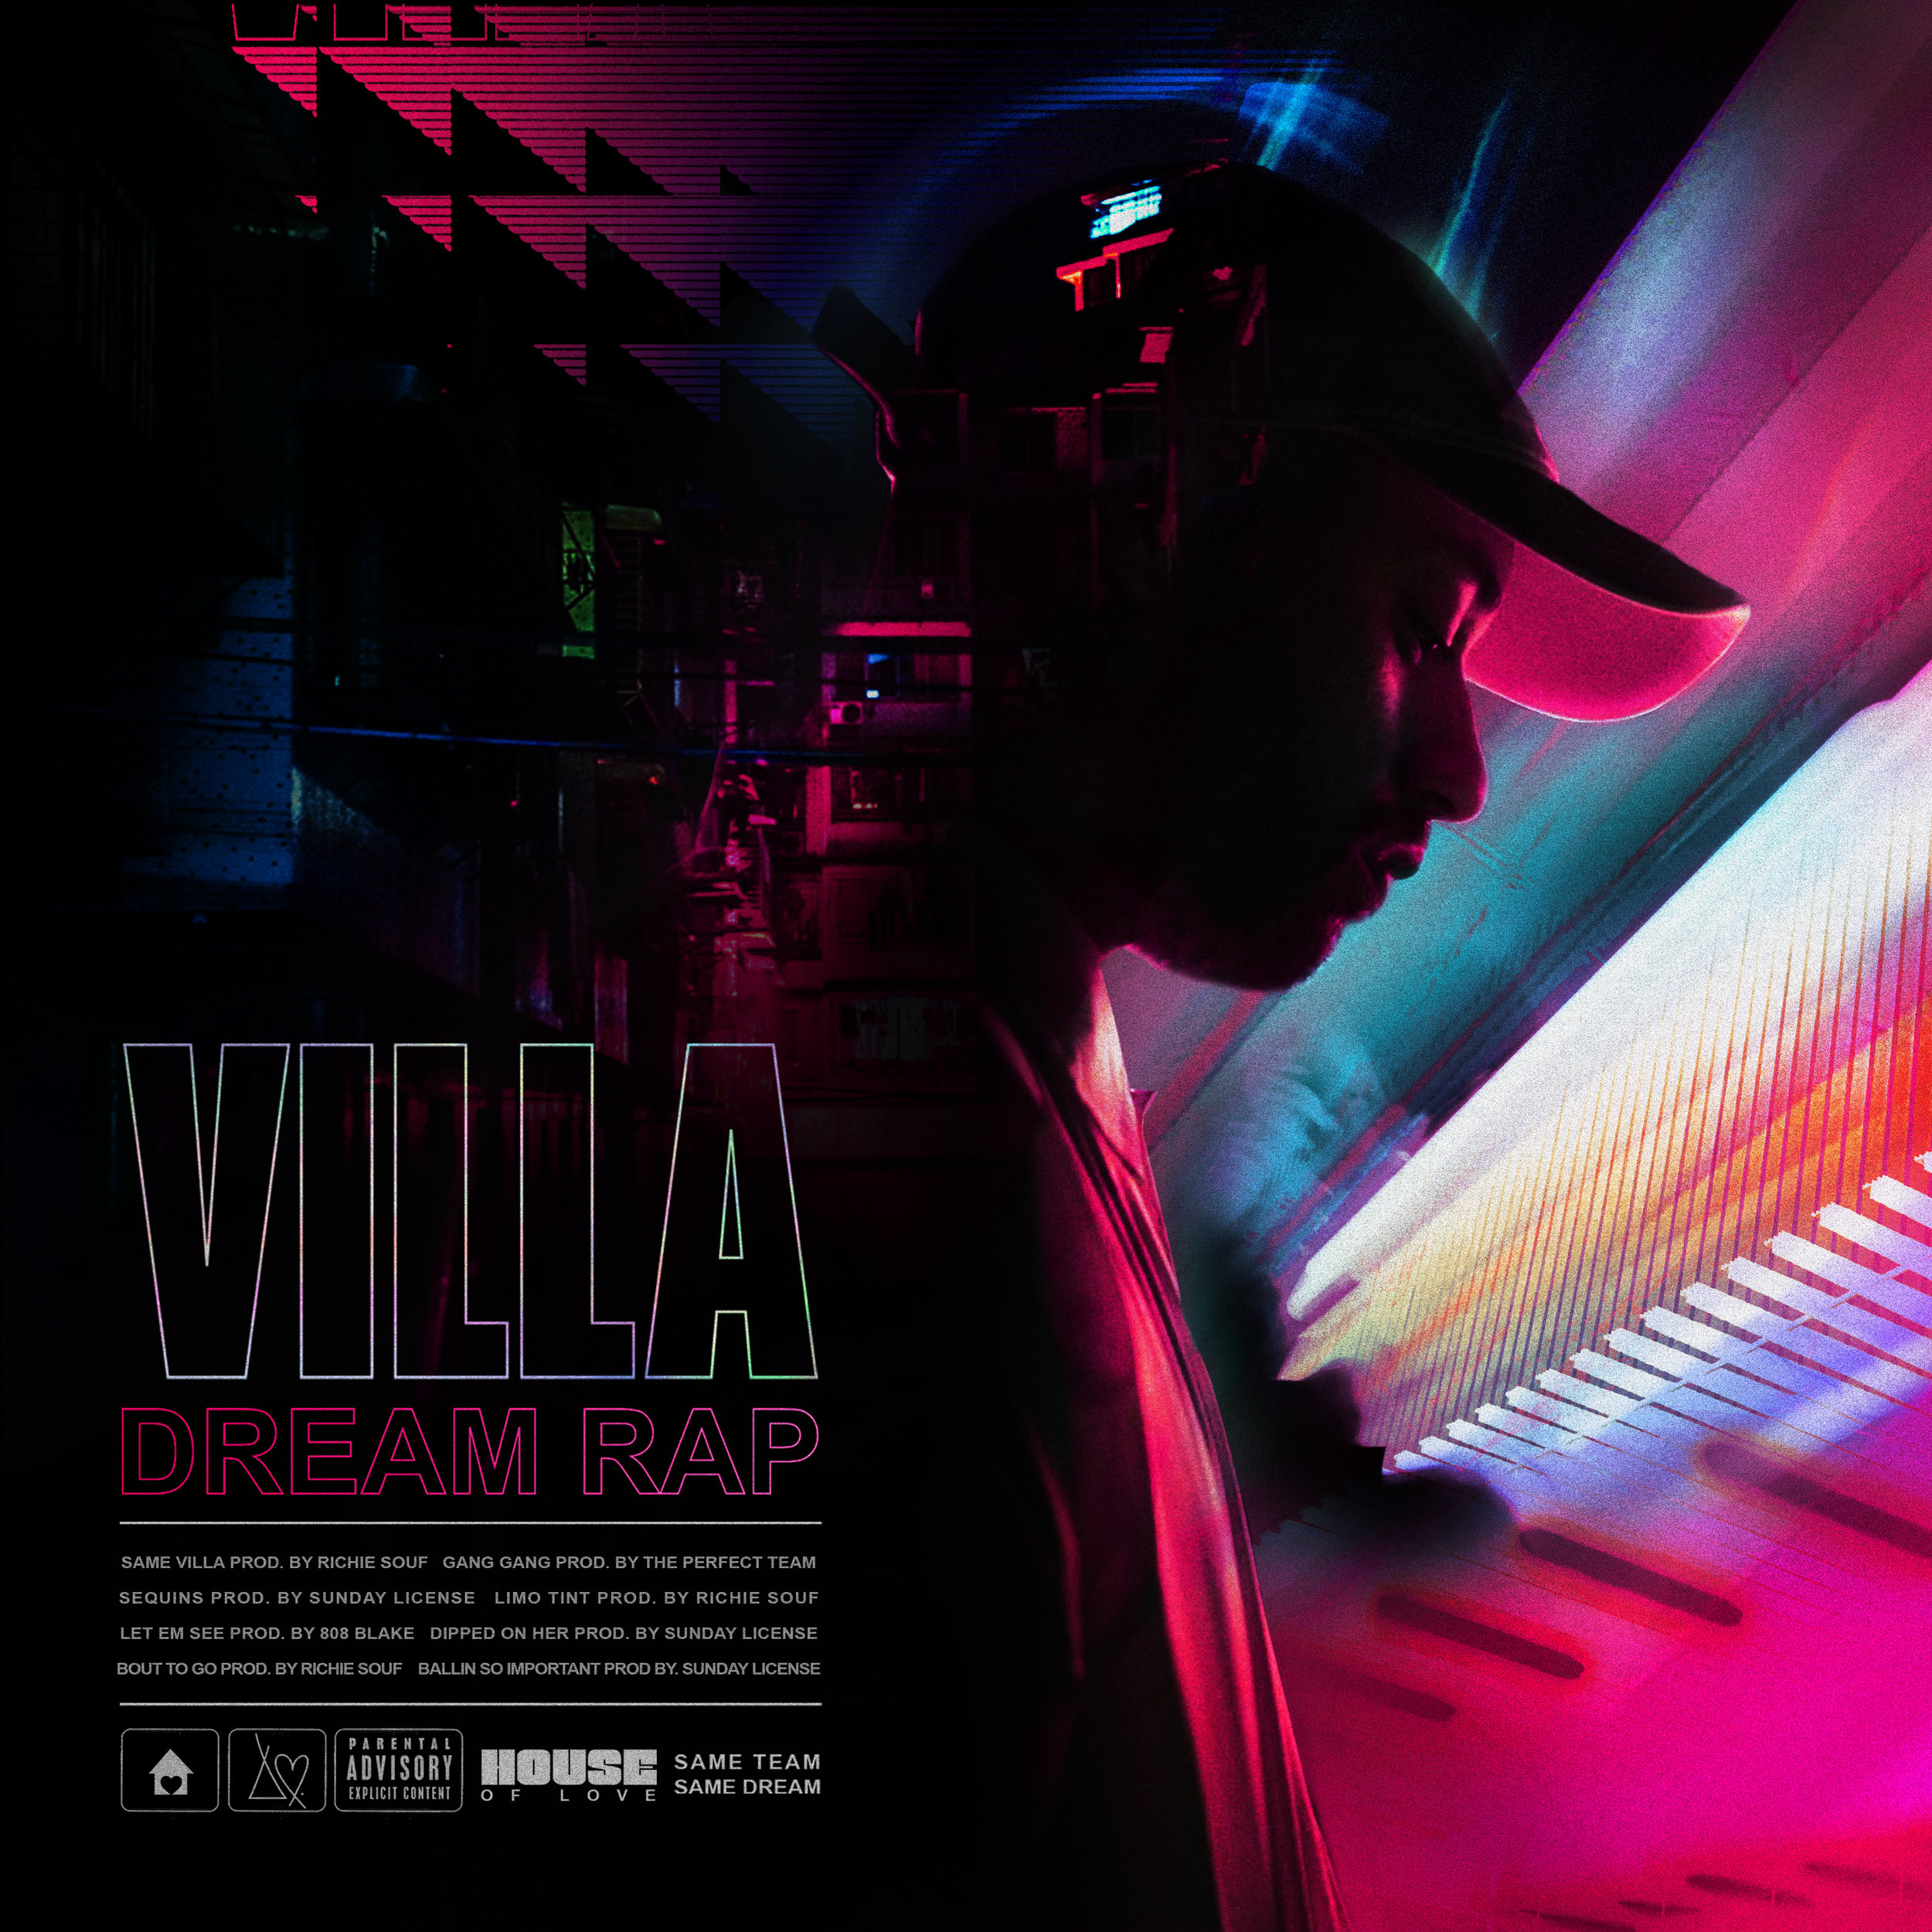 Villa - Dream Rap EP art